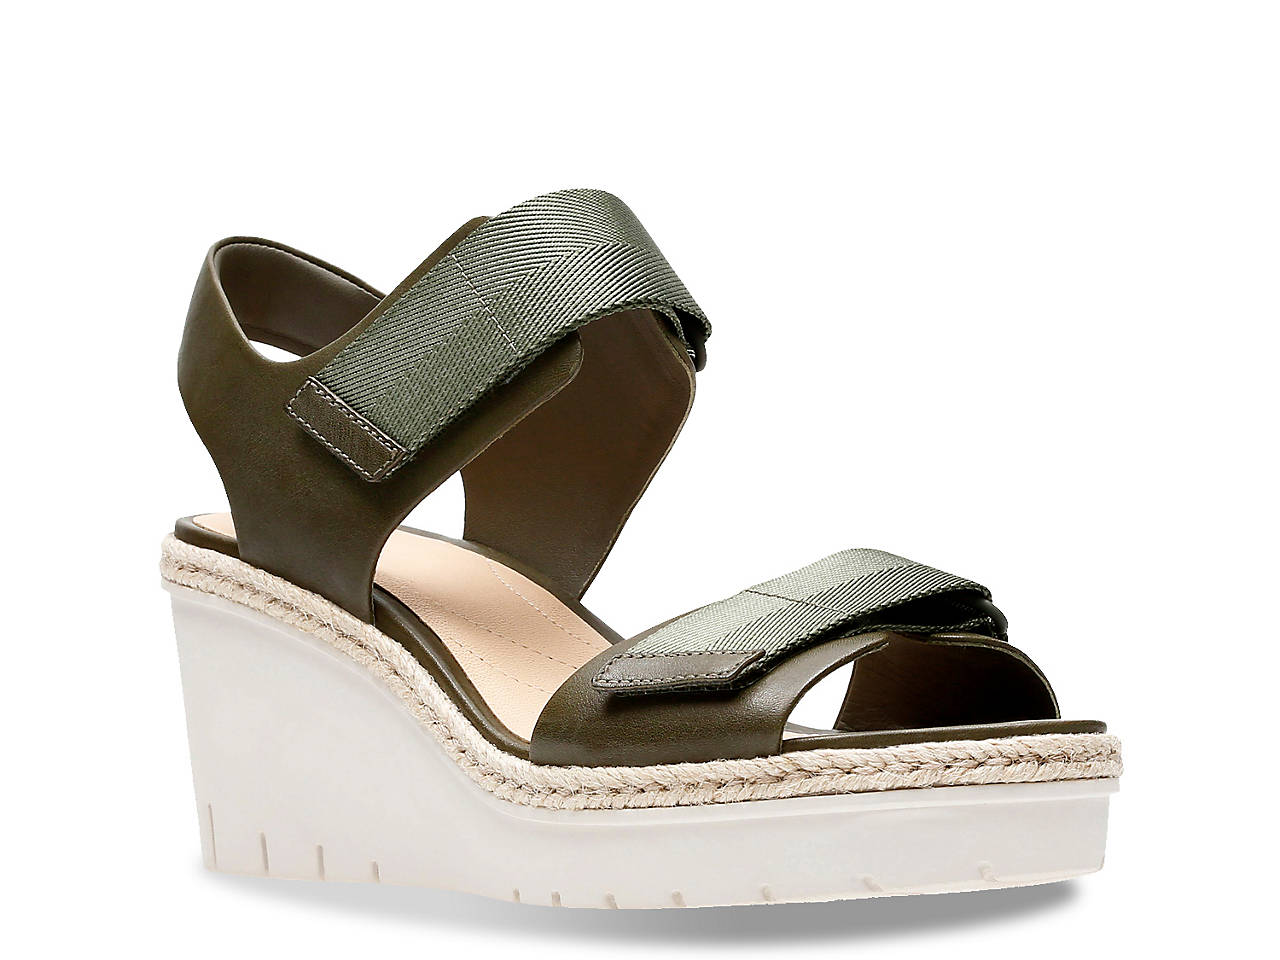 Clarks Artisan Palm Shine Wedge Sandal Women s Shoes  06f4a5d5d7